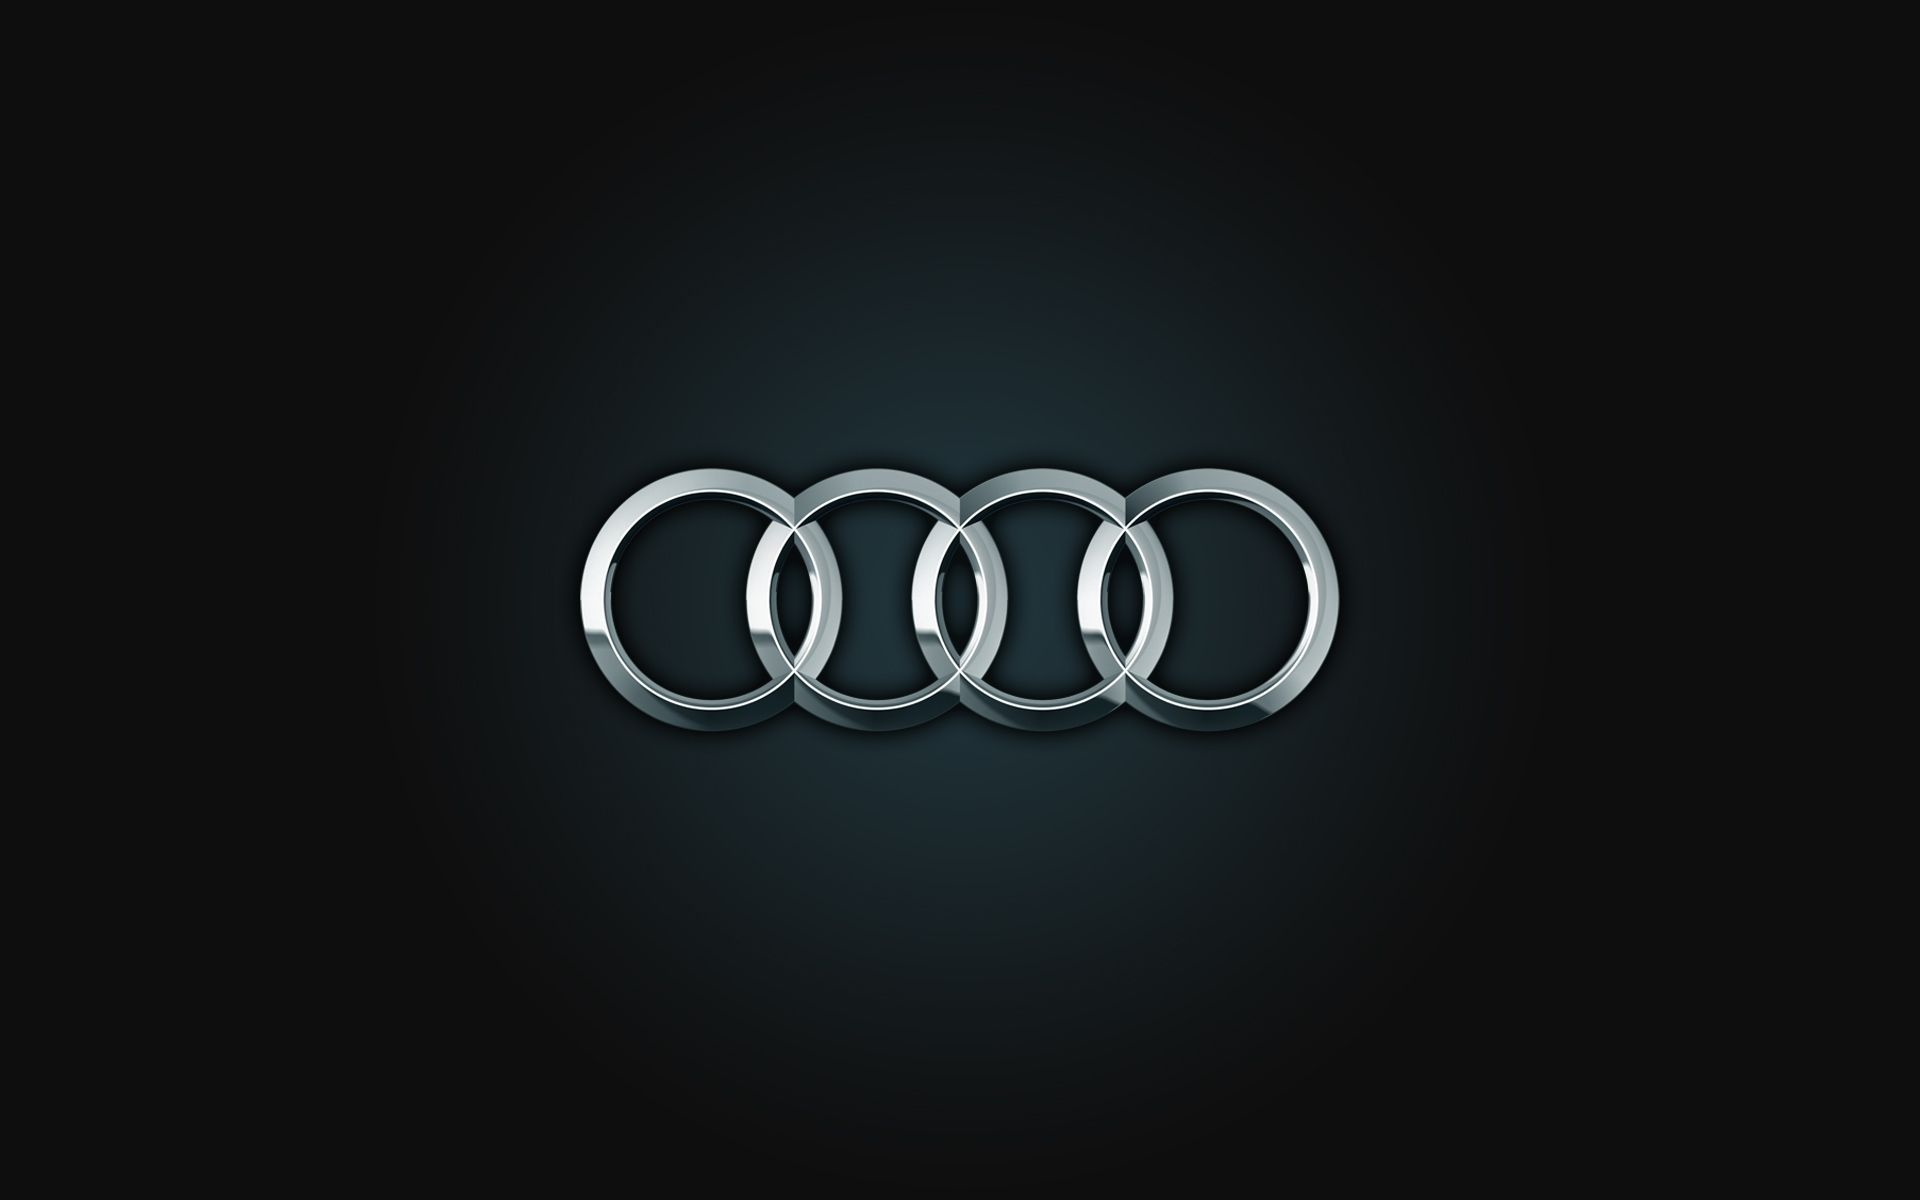 audi hd wallpapers this wallpaper 1920 1200 audi rings wallpapers 41 wallpapers adorable. Black Bedroom Furniture Sets. Home Design Ideas